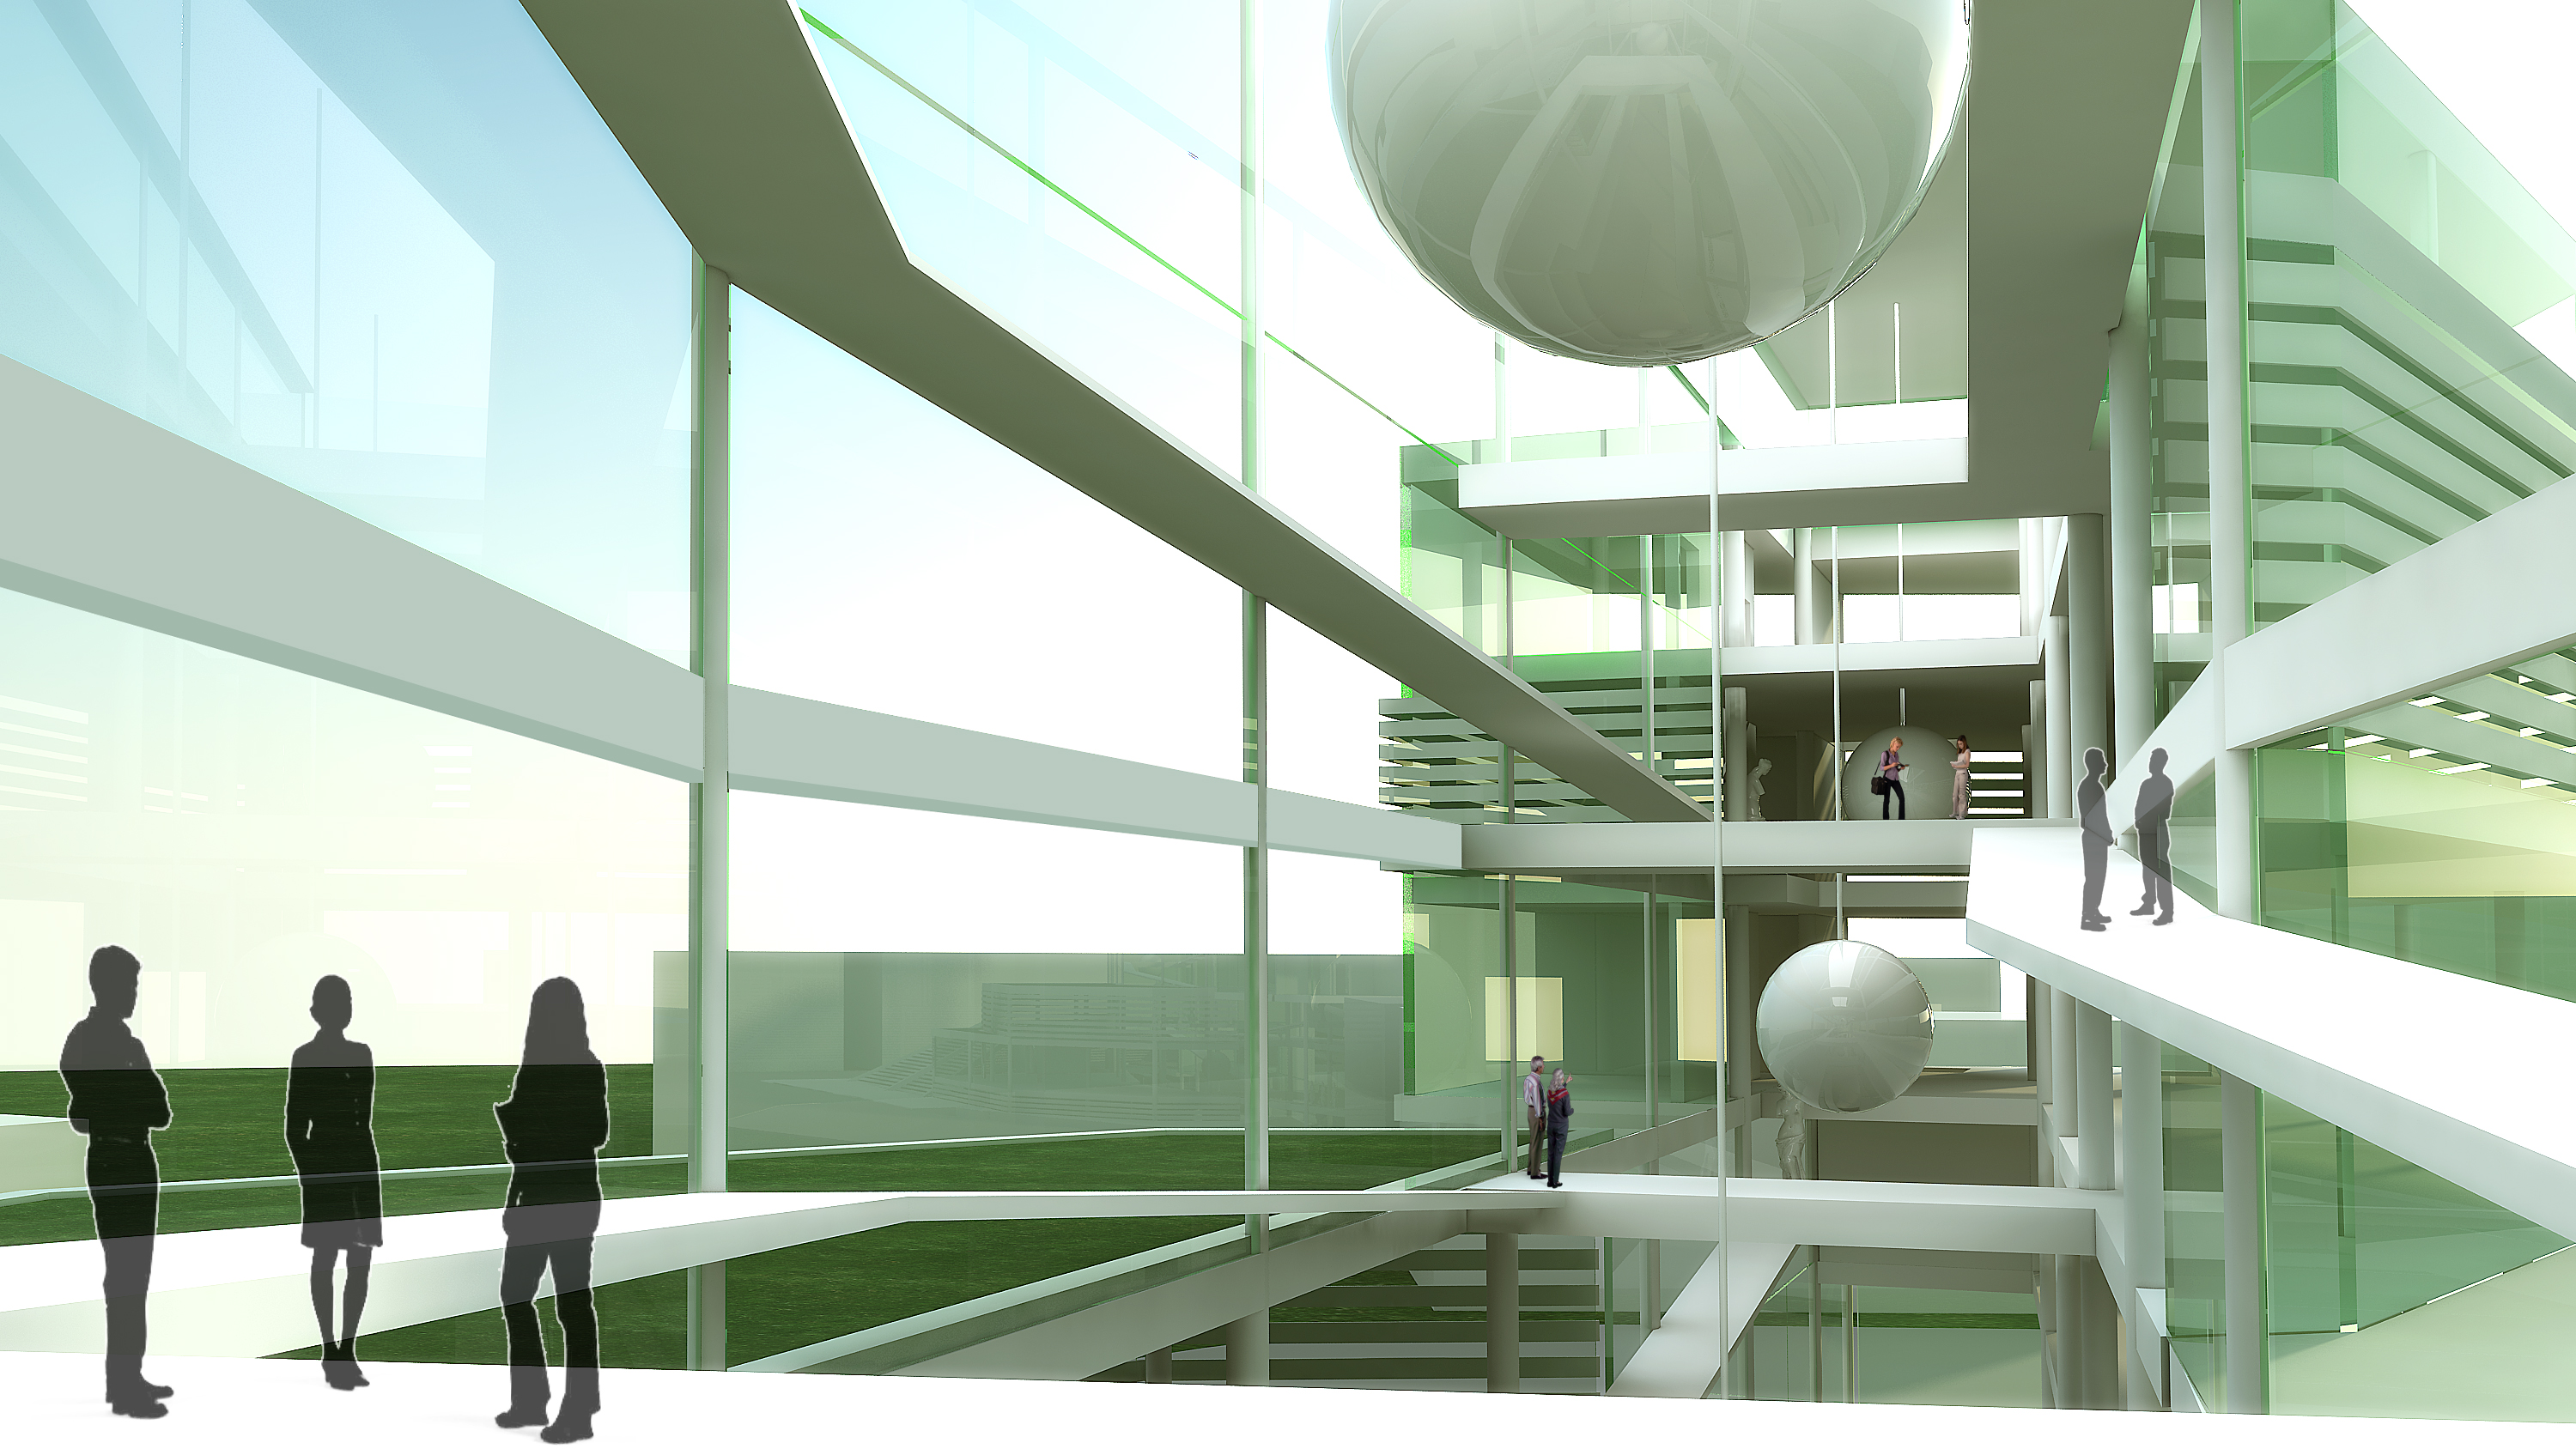 science museum concept interior visualization